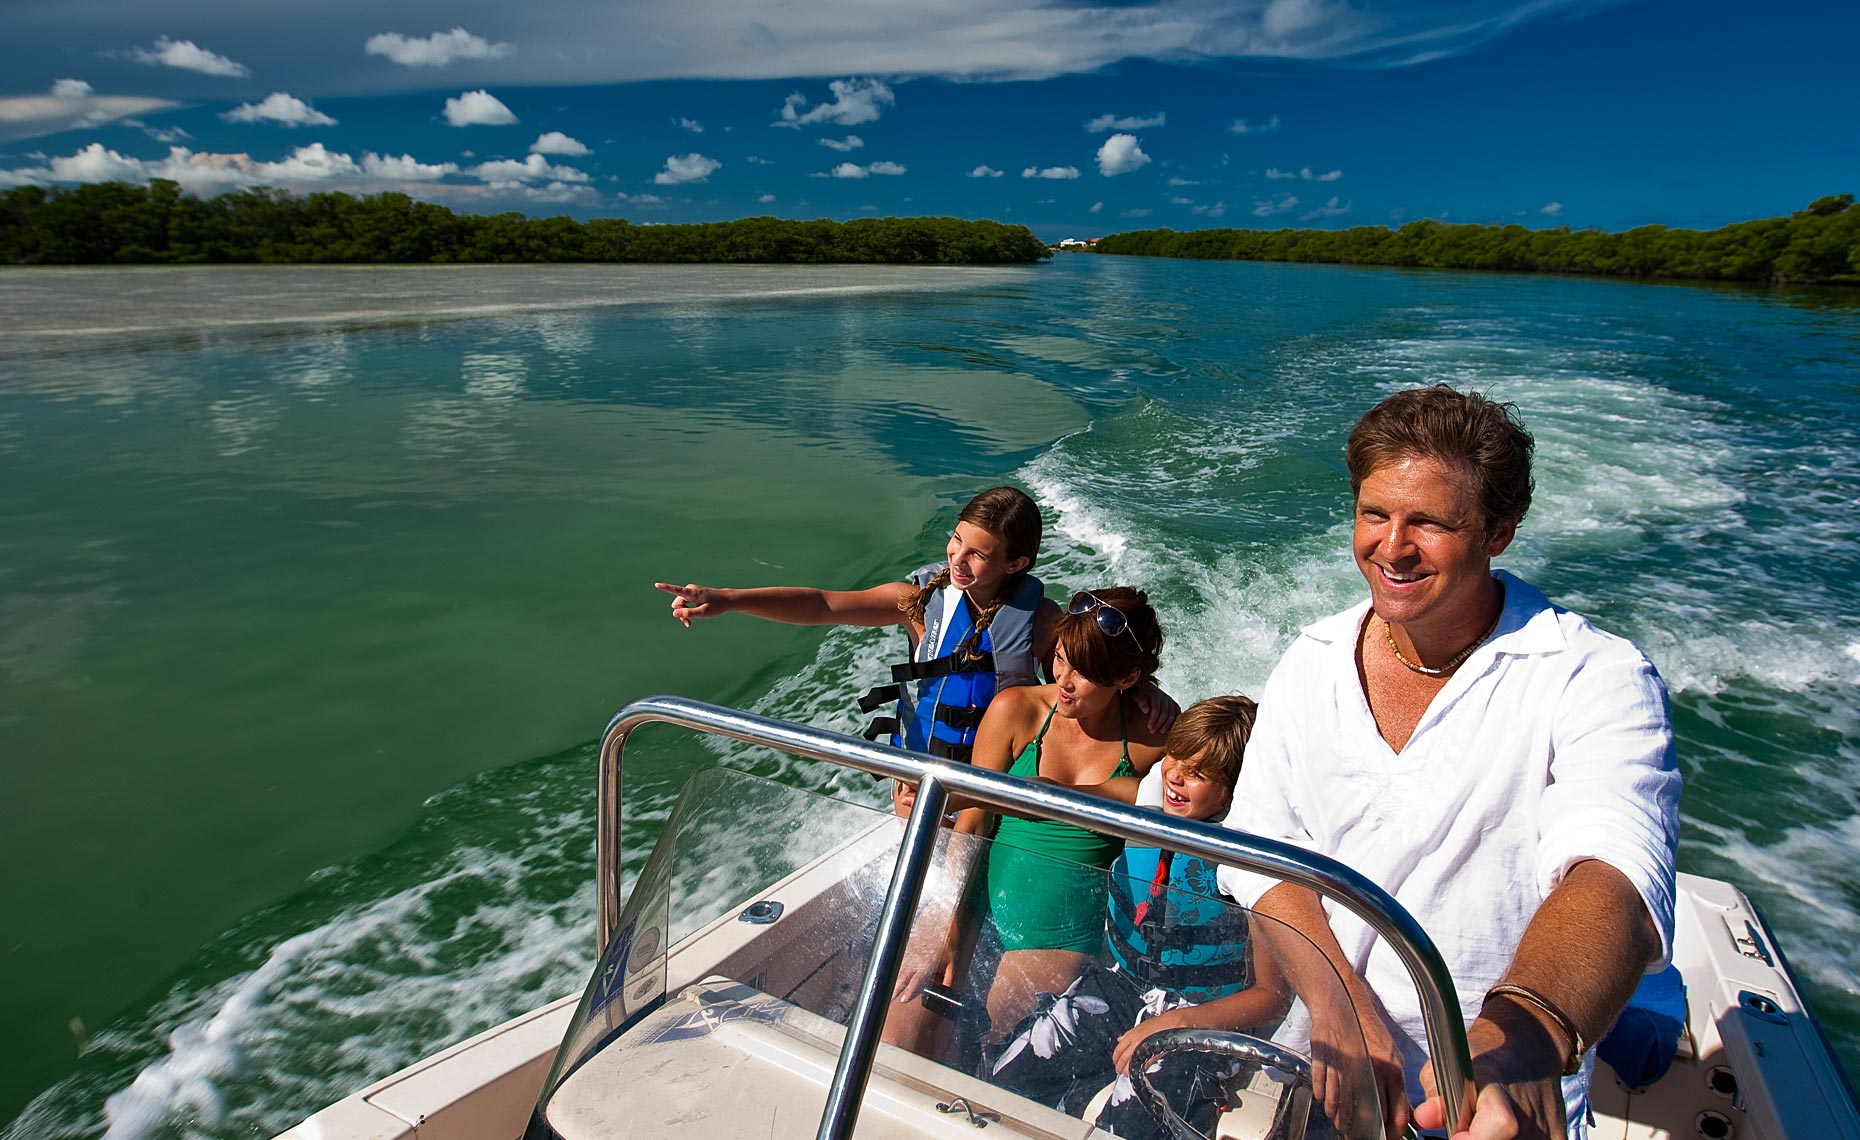 Family boating in the Florida Keys.